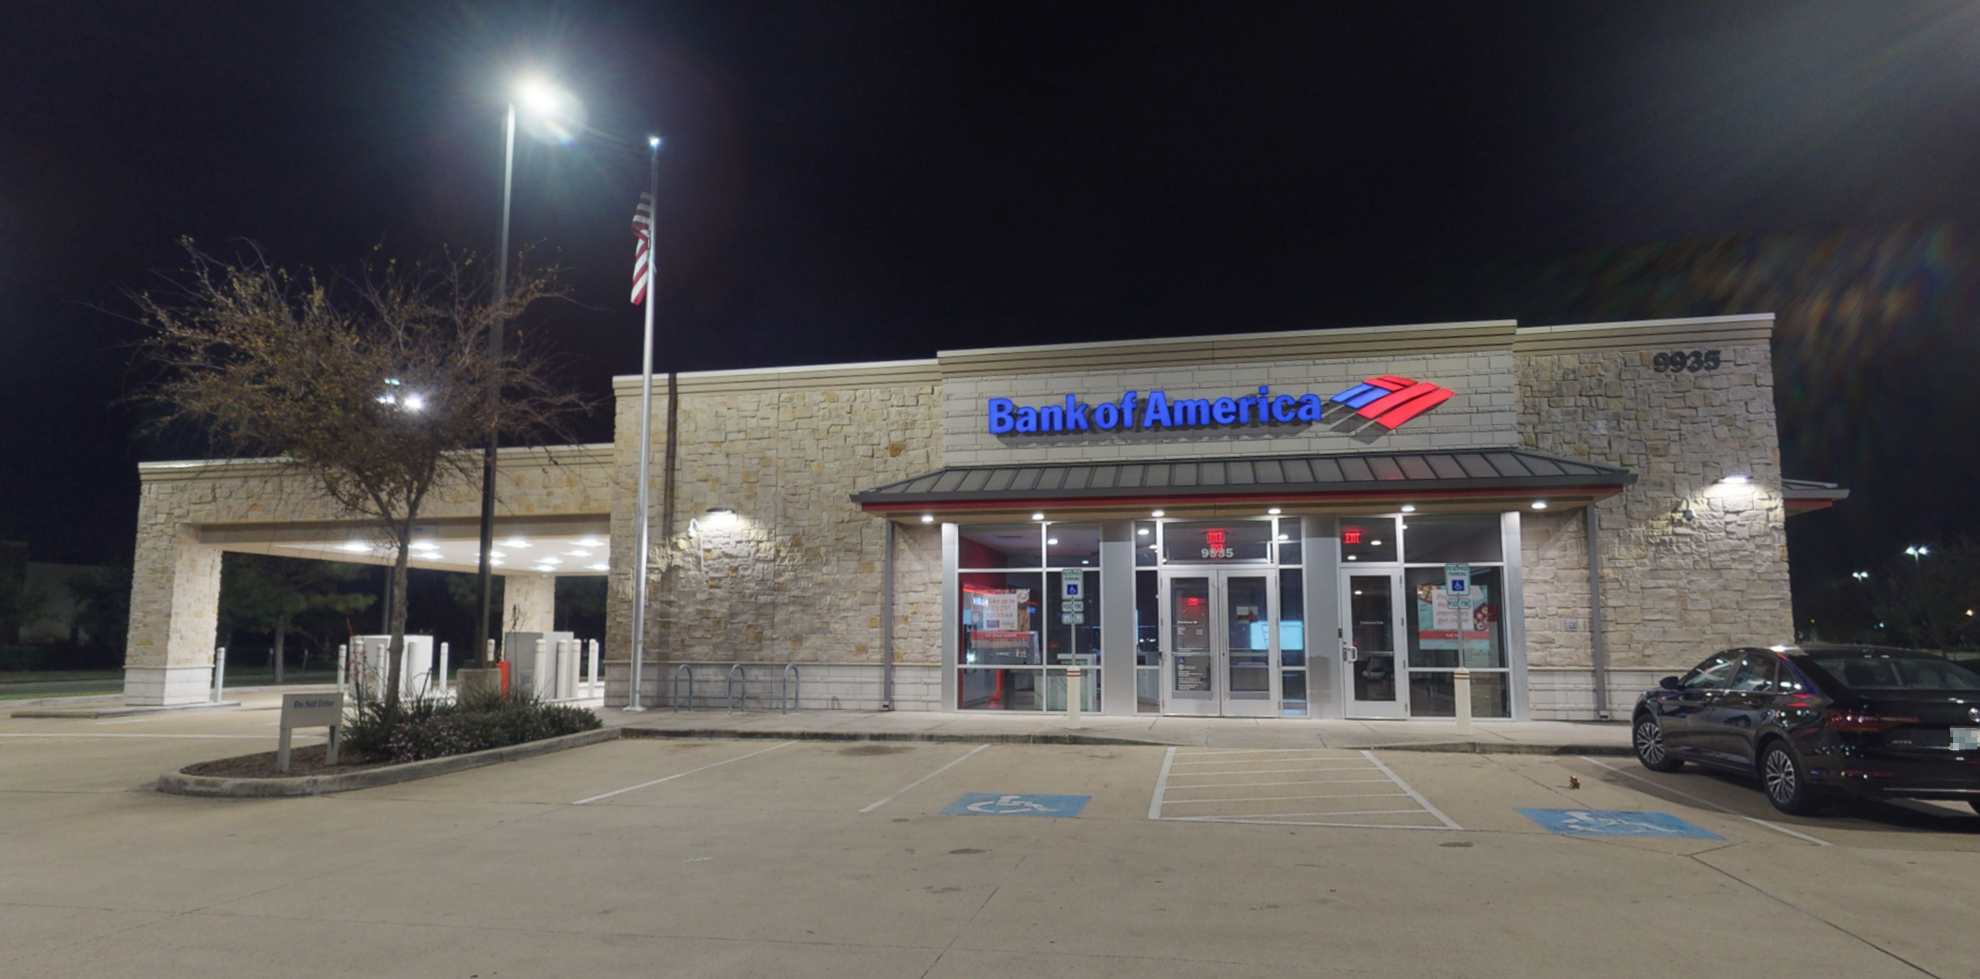 Bank of America financial center with drive-thru ATM   9935 Highway 6, Missouri City, TX 77459